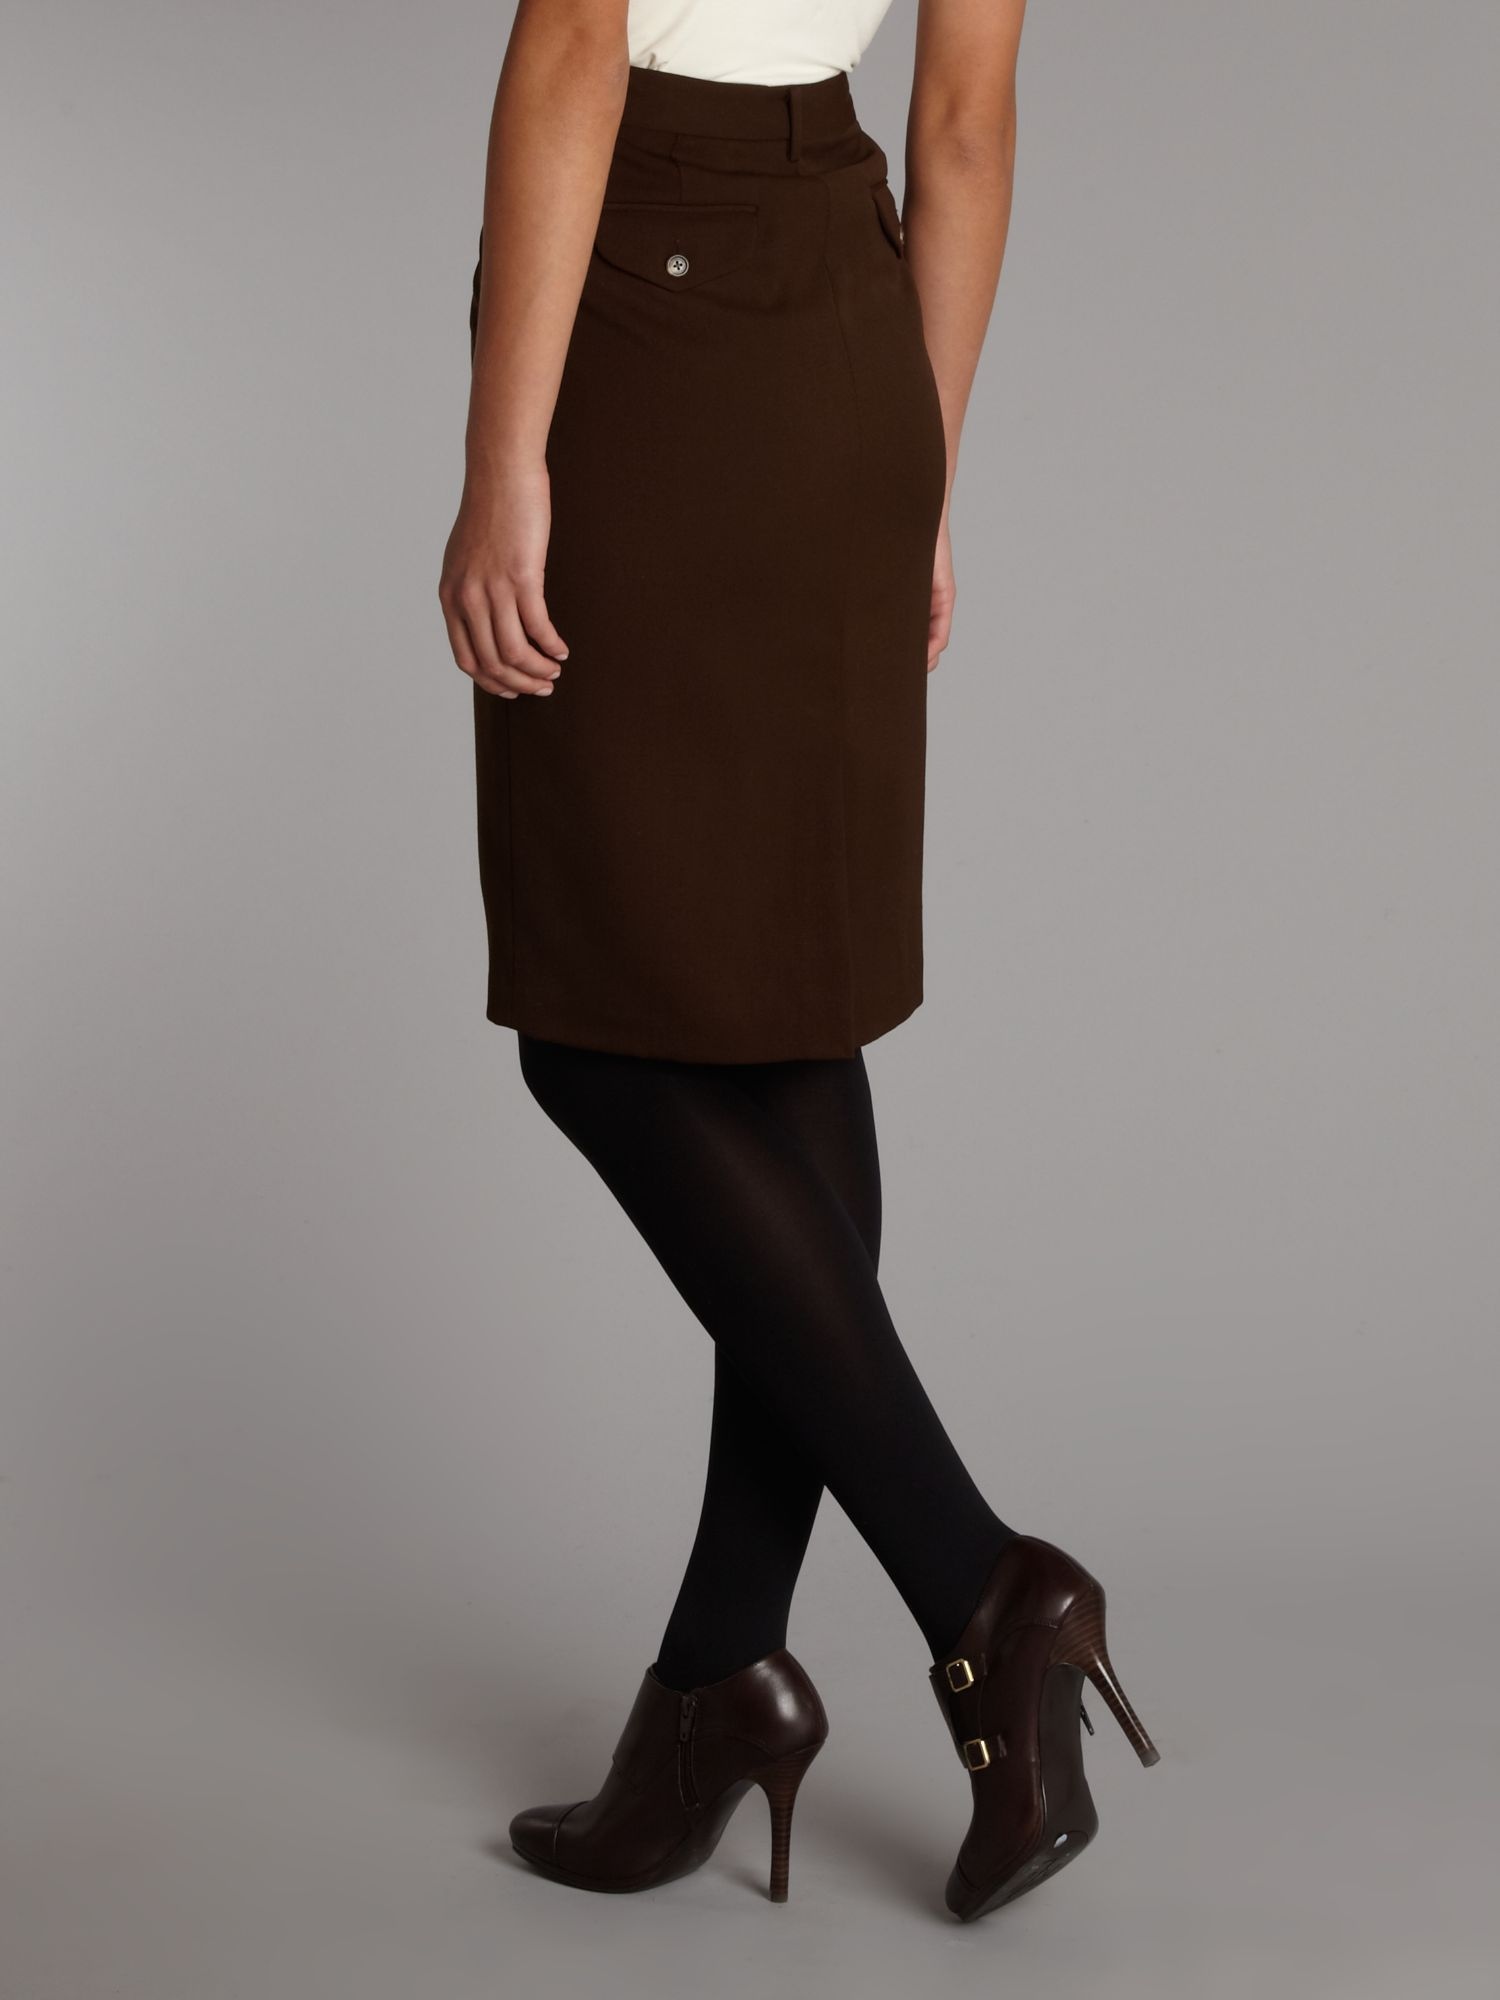 Lauren by ralph lauren High Waisted Wool Pencil Skirt in Brown | Lyst